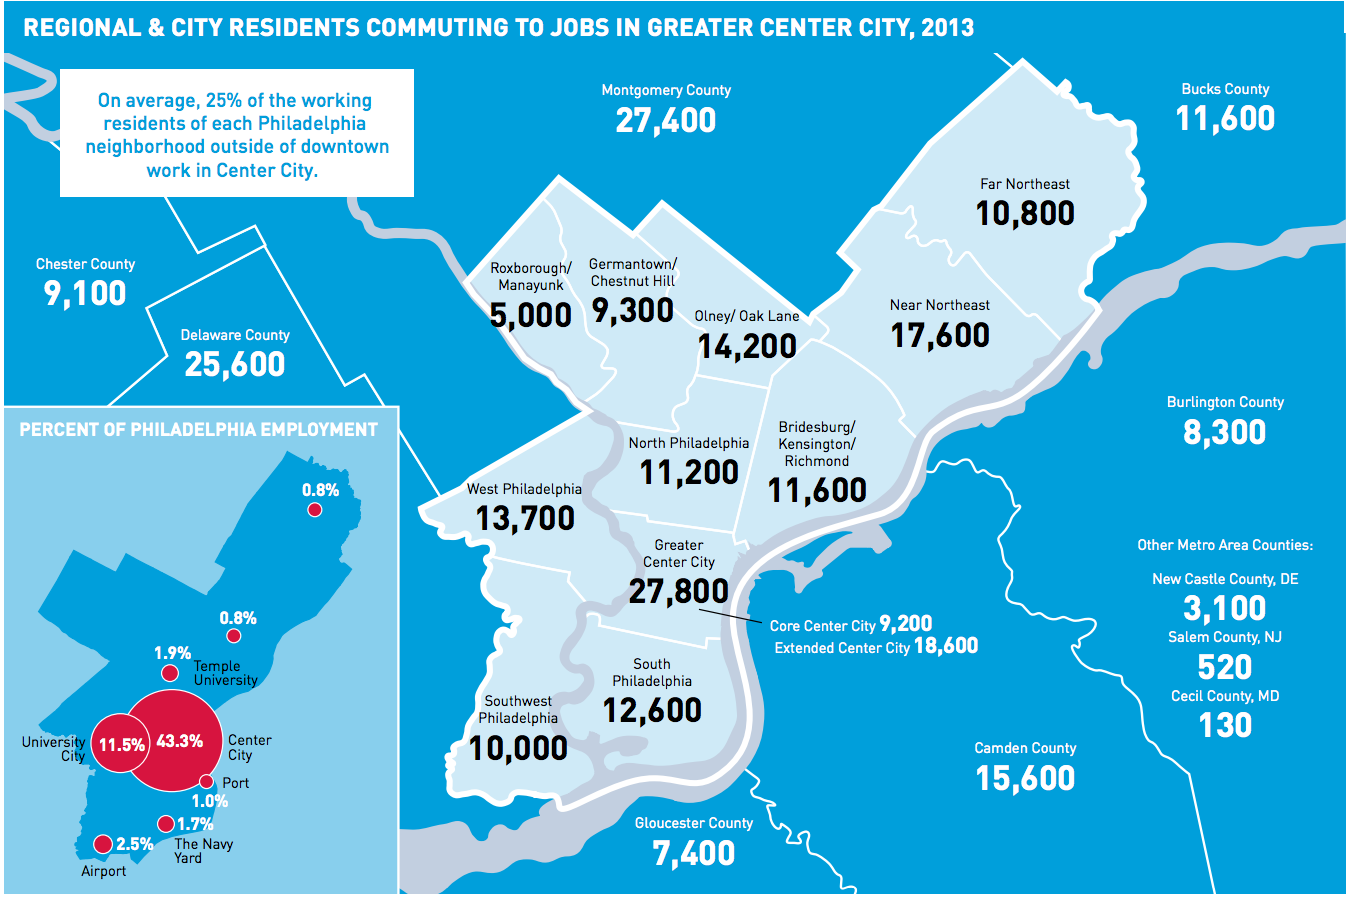 Regional & city residents commuting to jobs